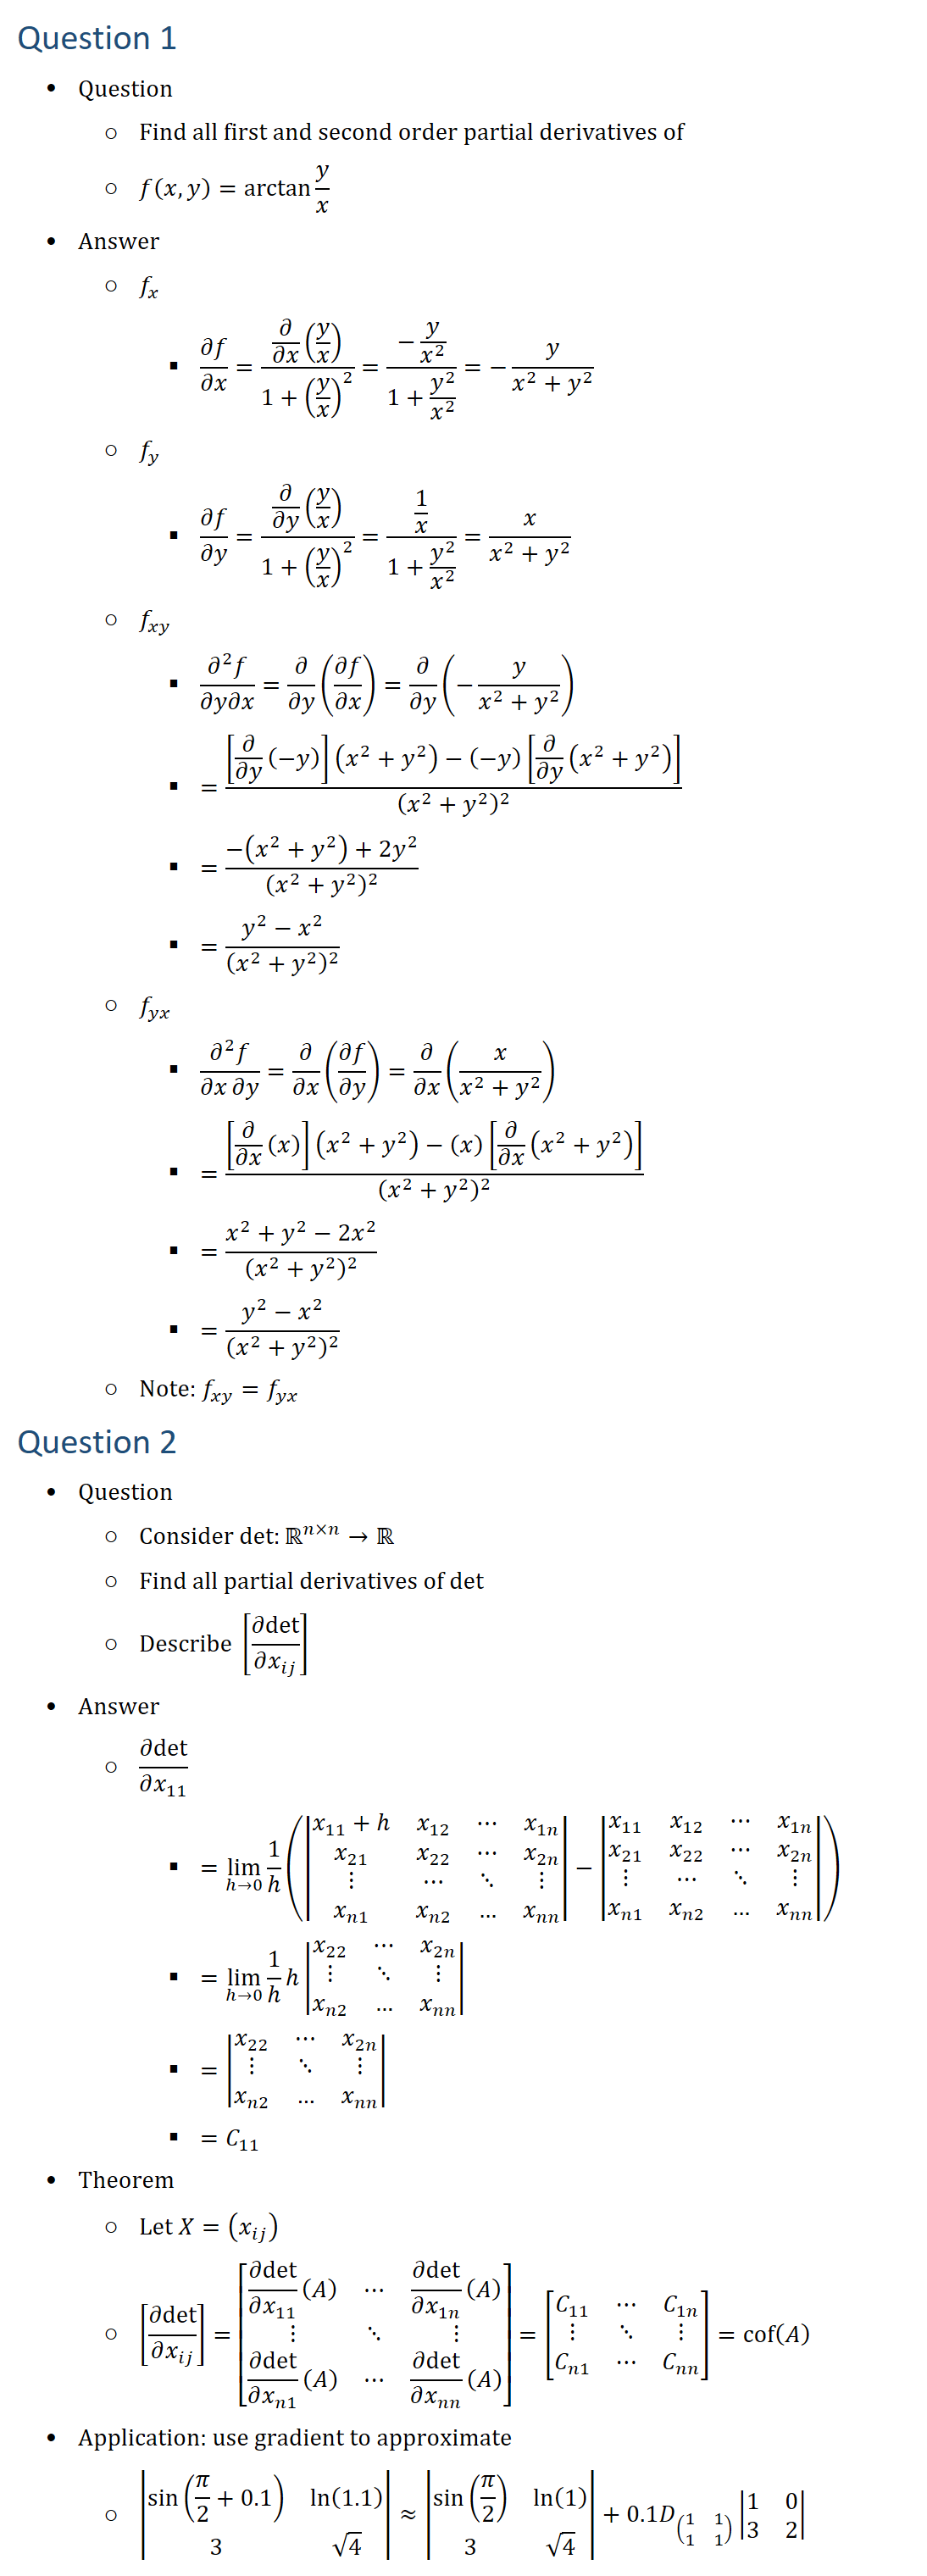 Question 1 • Question ○ Find all first and second order partial derivatives of ○ f(x,y)=arctan⁡〖y/x〗 • Answer ○ f_x § ∂f/∂x=(∂/∂x (y/x))/(1+(y/x)^2 )=(−y/x^2 )/(1+y^2/x^2 )=−y/(x^2+y^2 ) ○ f_y § ∂f/∂y=(∂/∂y (y/x))/(1+(y/x)^2 )=(1/x)/(1+y^2/x^2 )=x/(x^2+y^2 ) ○ f_xy § (∂^2 f)/∂y∂x=∂/∂y (∂f/∂x)=∂/∂y (−y/(x^2+y^2 )) § =([∂/∂y (−y)](x^2+y^2 )−(−y)[∂/∂y (x^2+y^2 )])/(x^2+y^2 )^2 § =(−(x^2+y^2 )+2y^2)/(x^2+y^2 )^2 § =(y^2−x^2)/(x^2+y^2 )^2 ○ f_yx § (∂^2 f)/∂x∂y=∂/∂x (∂f/∂y)=∂/∂x (x/(x^2+y^2 )) § =([∂/∂x (x)](x^2+y^2 )−(x)[∂/∂x (x^2+y^2 )])/(x^2+y^2 )^2 § =(x^2+y^2−2x^2)/(x^2+y^2 )^2 § =(y^2−x^2)/(x^2+y^2 )^2 ○ Note: f_xy=f_yx Question 2 • Question ○ Consider 〖det:〗⁡〖R(n×n)→R ○ Find all partial derivatives of det ○ Describe [∂det/(∂x_ij )] • Answer ○ ∂det/(∂x_11 ) § =lim_(h0)⁡〖1/h(|■8(x_11+hx_12&⋯&x_1n@x_21&x_22&⋯&x_2n@⋮&⋯&⋱&⋮@x_n1&x_n2&…&x_nn )|−|■8(x_11&x_12&⋯&x_1n@x_21&x_22&⋯&x_2n@⋮&⋯&⋱&⋮@x_n1&x_n2&…&x_nn )|)〗 § =lim_(h0)⁡〖1/hh■8(x_22&⋯&x_2n@⋮&⋱&⋮@x_n2&…&x_nn )|〗 § =|■8(x_22&⋯&x_2n@⋮&⋱&⋮@x_n2&…&x_nn )| § =C_11 • Theorem ○ Let X=(x_ij ) ○ [∂det/(∂x_ij )]=[■8(∂det/(∂x_11 ) (A)&⋯&∂det/(∂x_1n ) (A)@⋮&⋱&⋮@∂det/(∂x_n1 ) (A)&⋯&∂det/(∂x_nn ) (A) )]=[■8(C_11&⋯&C_1n@⋮&⋱&⋮@C_n1&⋯&C_nn )]=cof(A) • Application: use gradients to approximate ○ |■8(sin⁡(π/2+0.1)&ln⁡(1.1)@3&√4)|≈|■8(sin⁡(π/2)&ln⁡(1)@3&√4)|+0.1D_((■8(1&1@1&1)) ) |■8(1&0@3&2)|